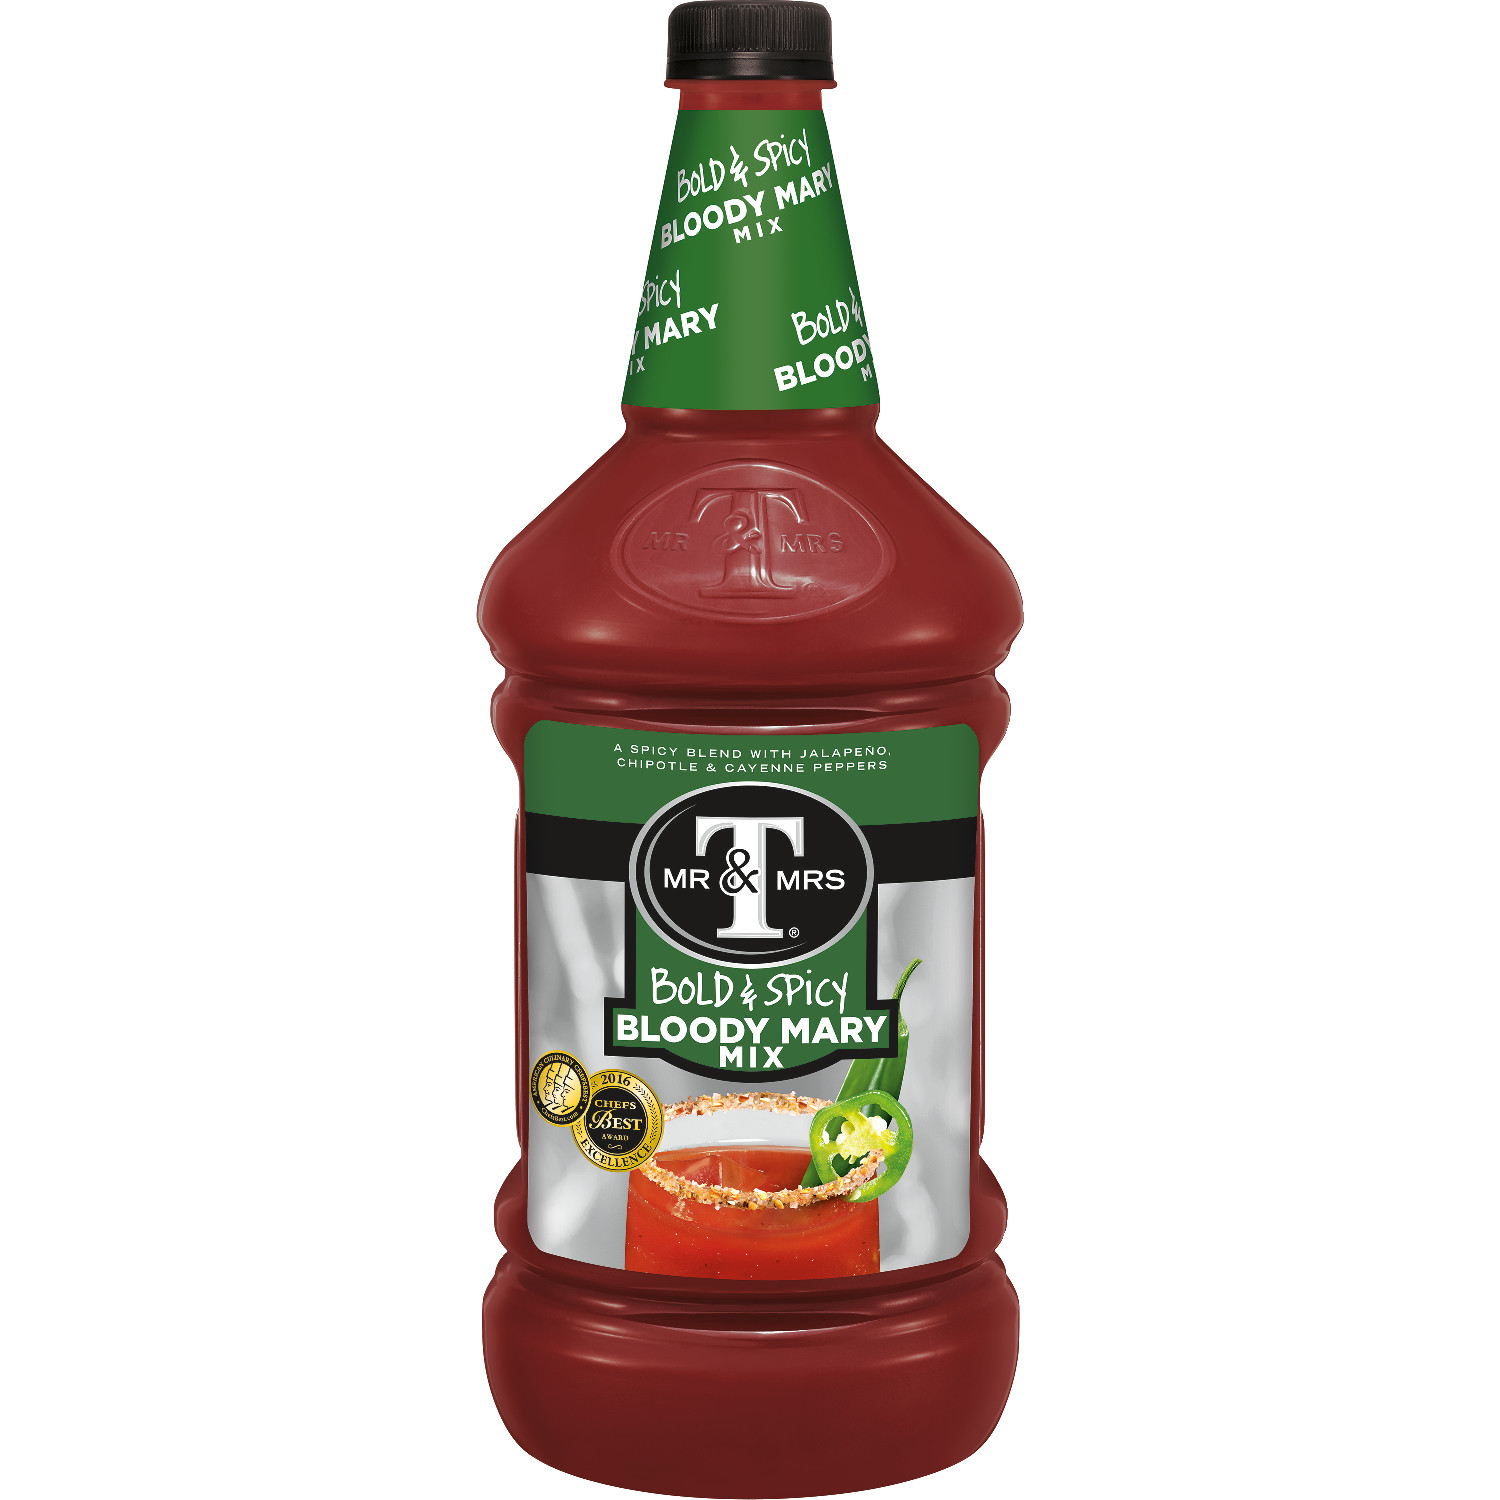 Mr & Mrs T Bold & Spicy Bloody Mary Mix, 1.75 L